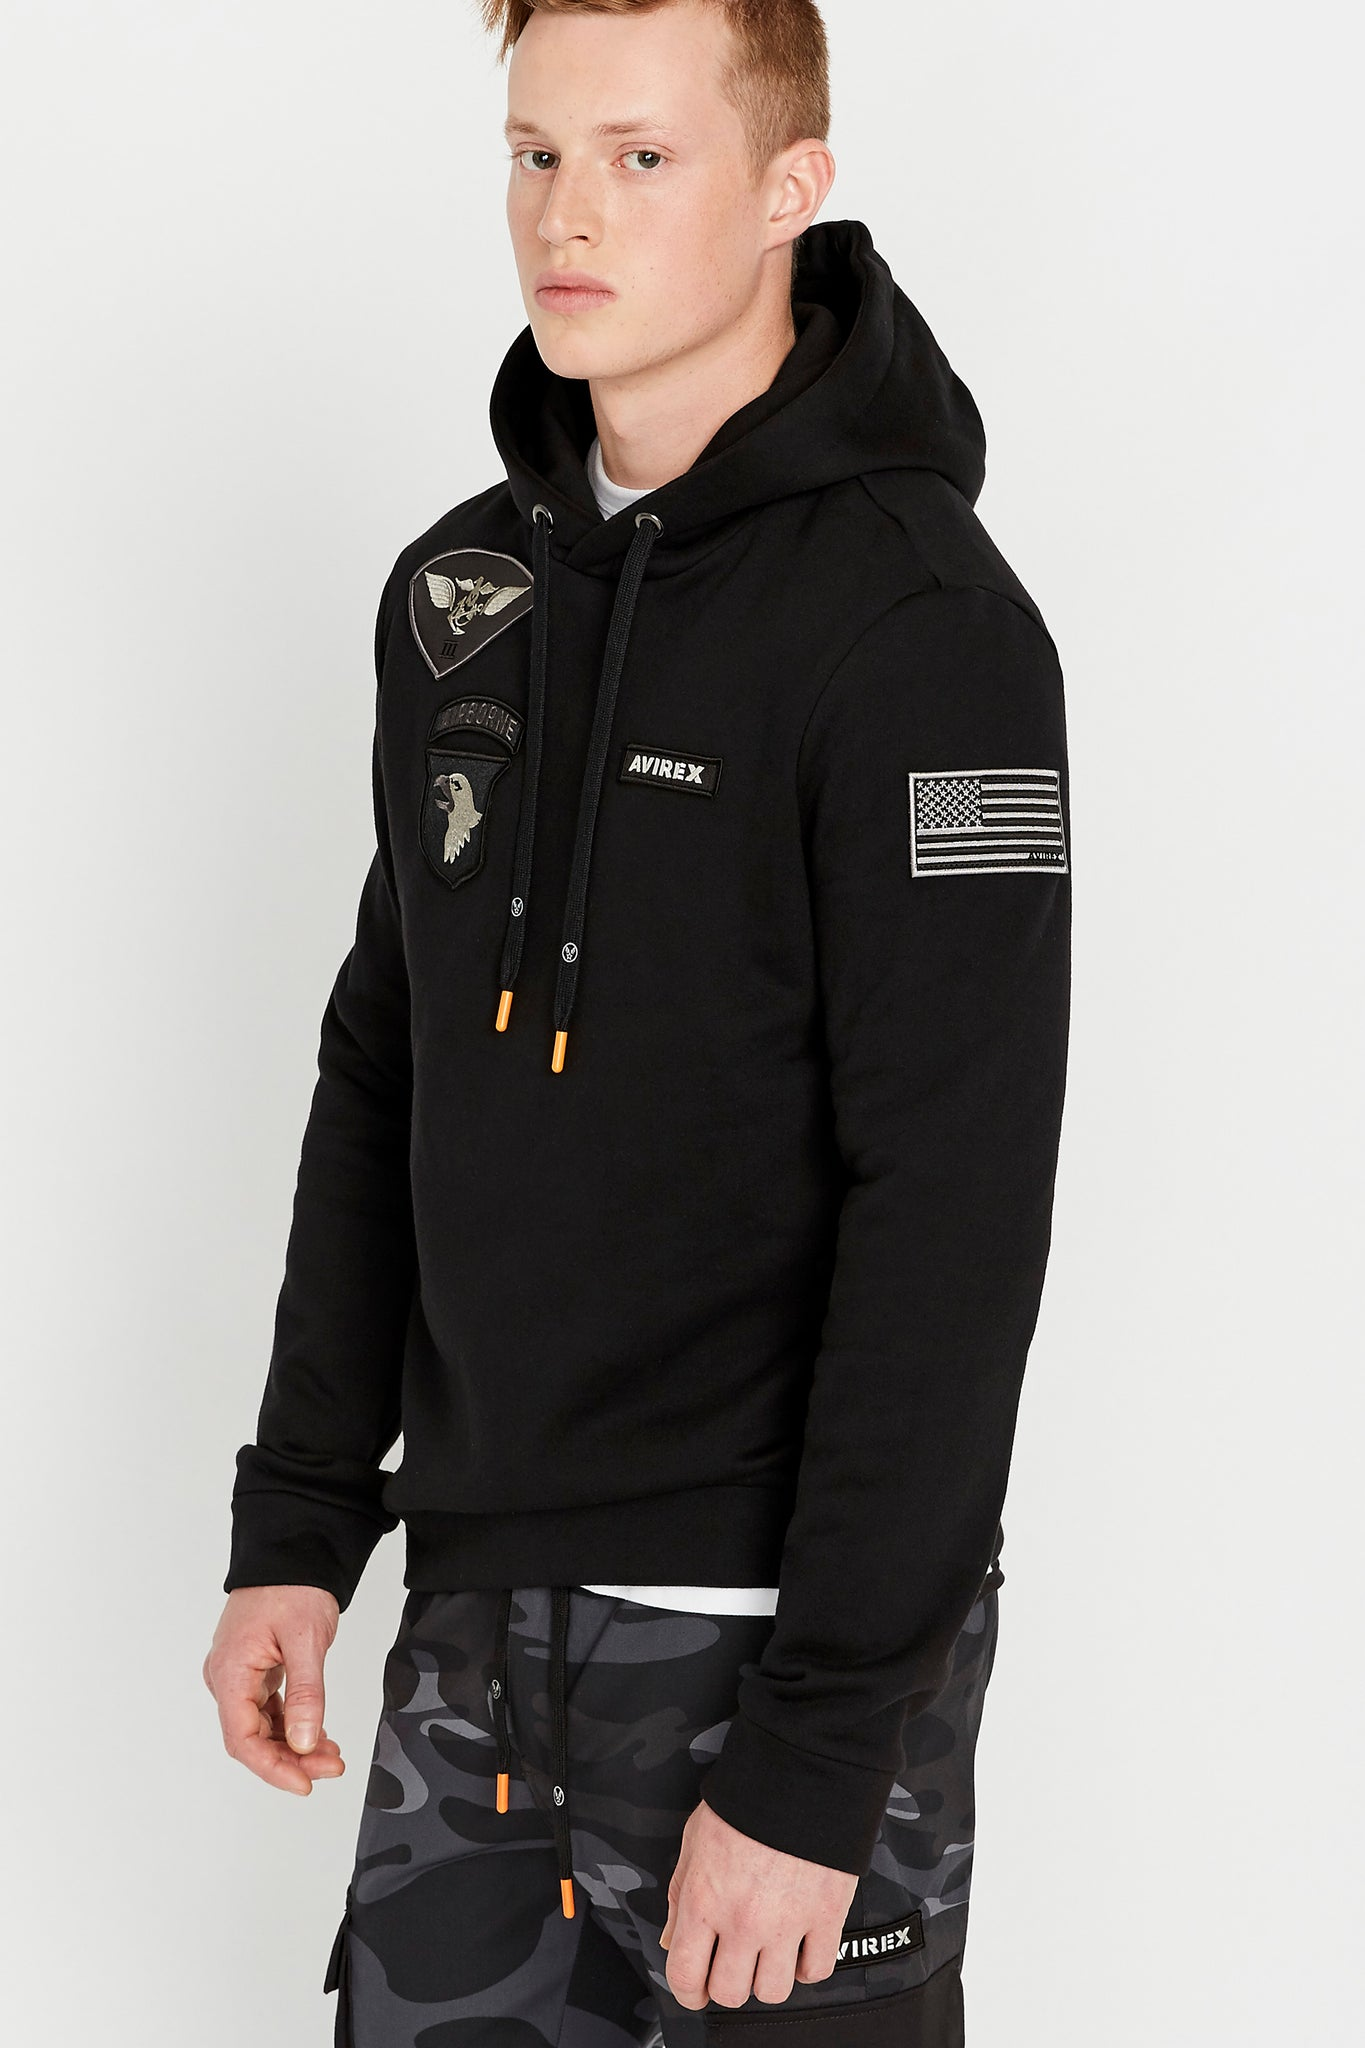 Side view of man wearing a black long sleeve hoodie sweatshirt with multi-patch design on the chest and on the sleeve